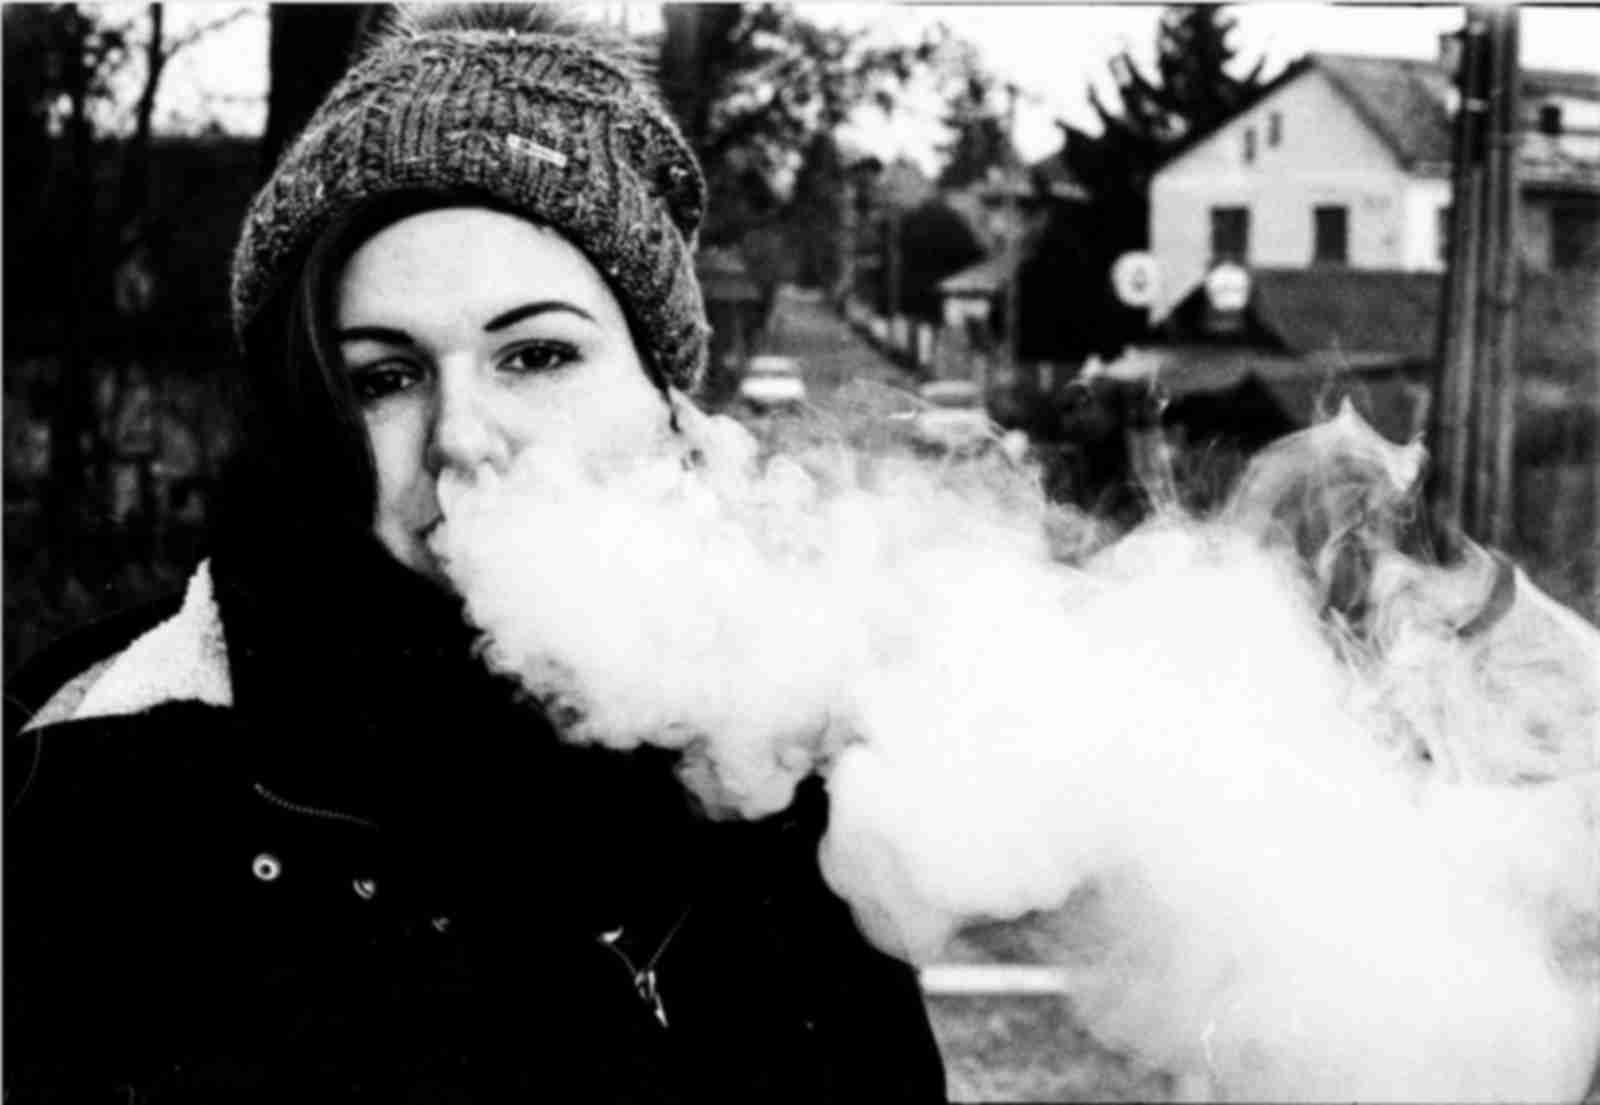 vaping is a gateway to quitting smoking